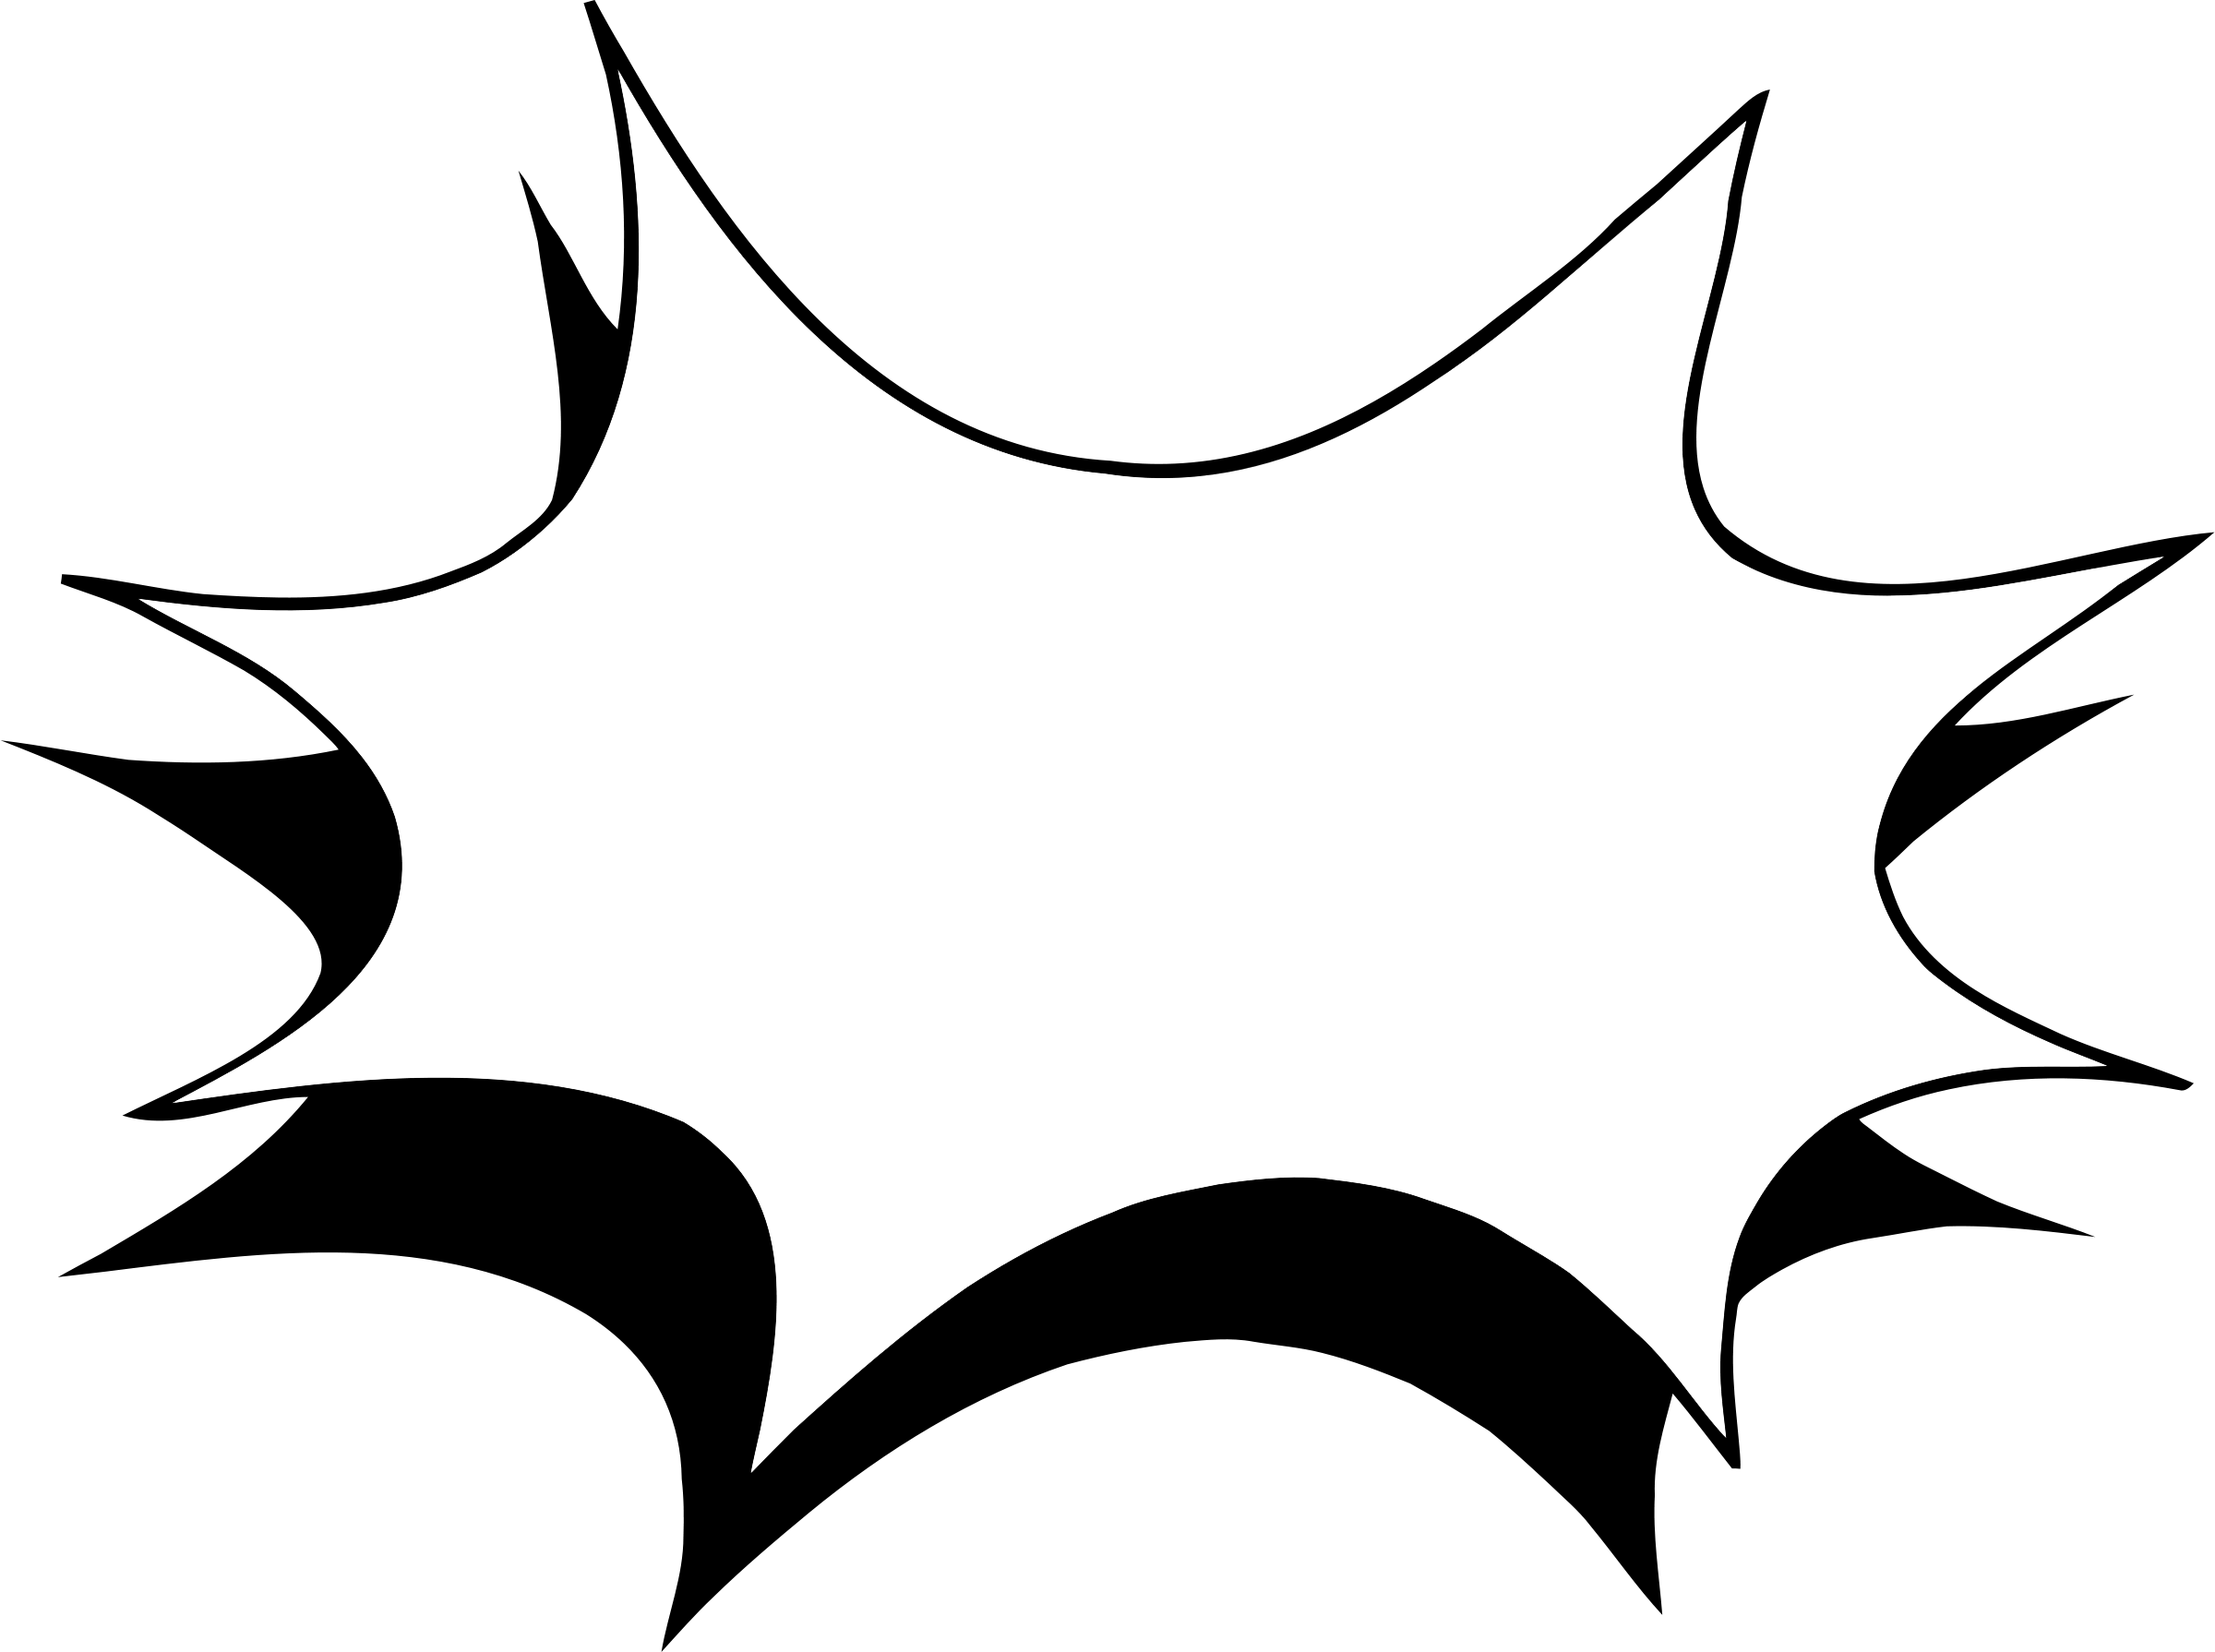 Black starburst png. Transparent images all